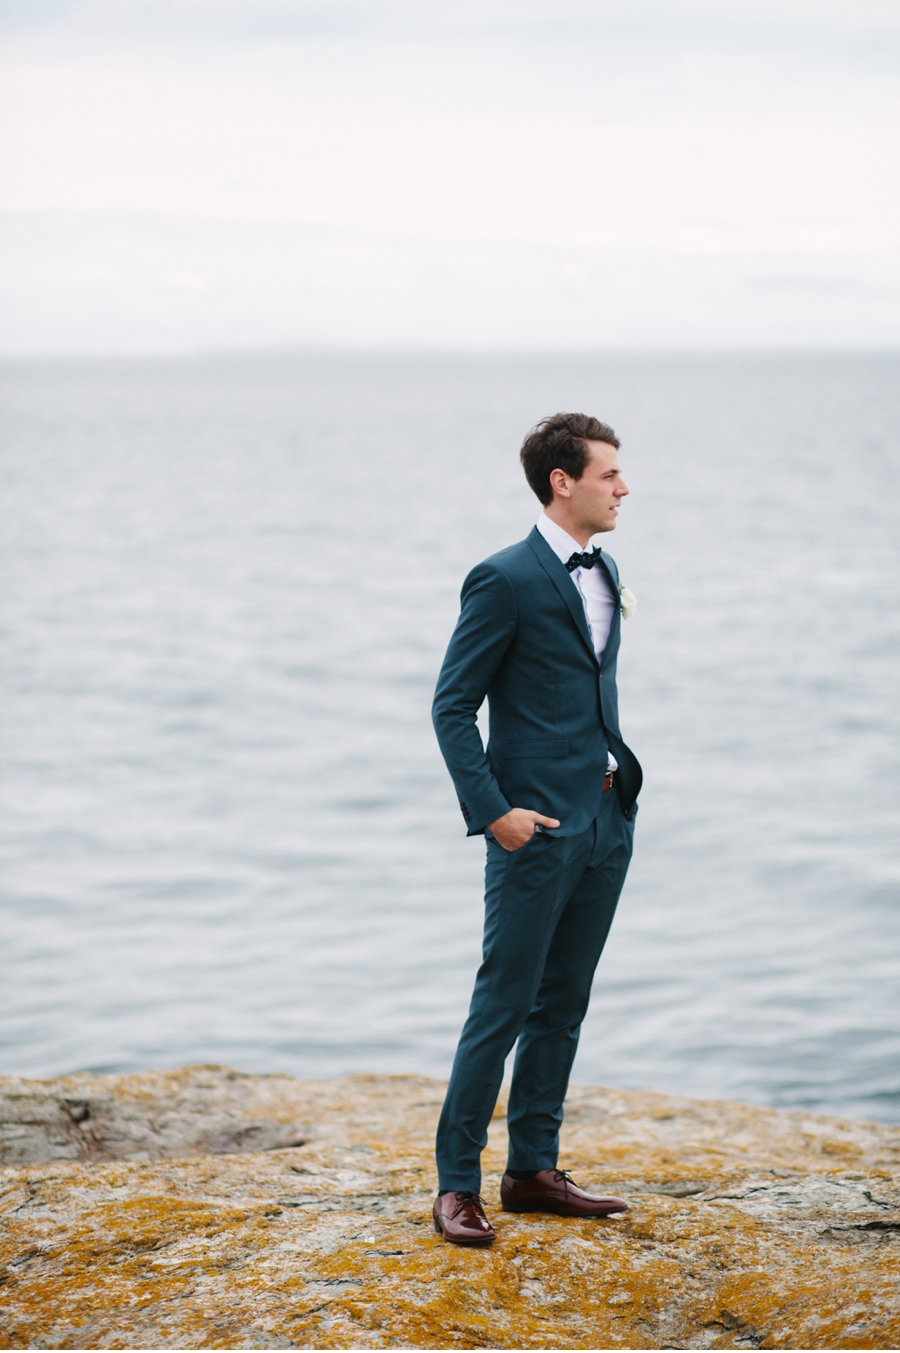 Groom-in-Slim-Suit-Vancouver-Island